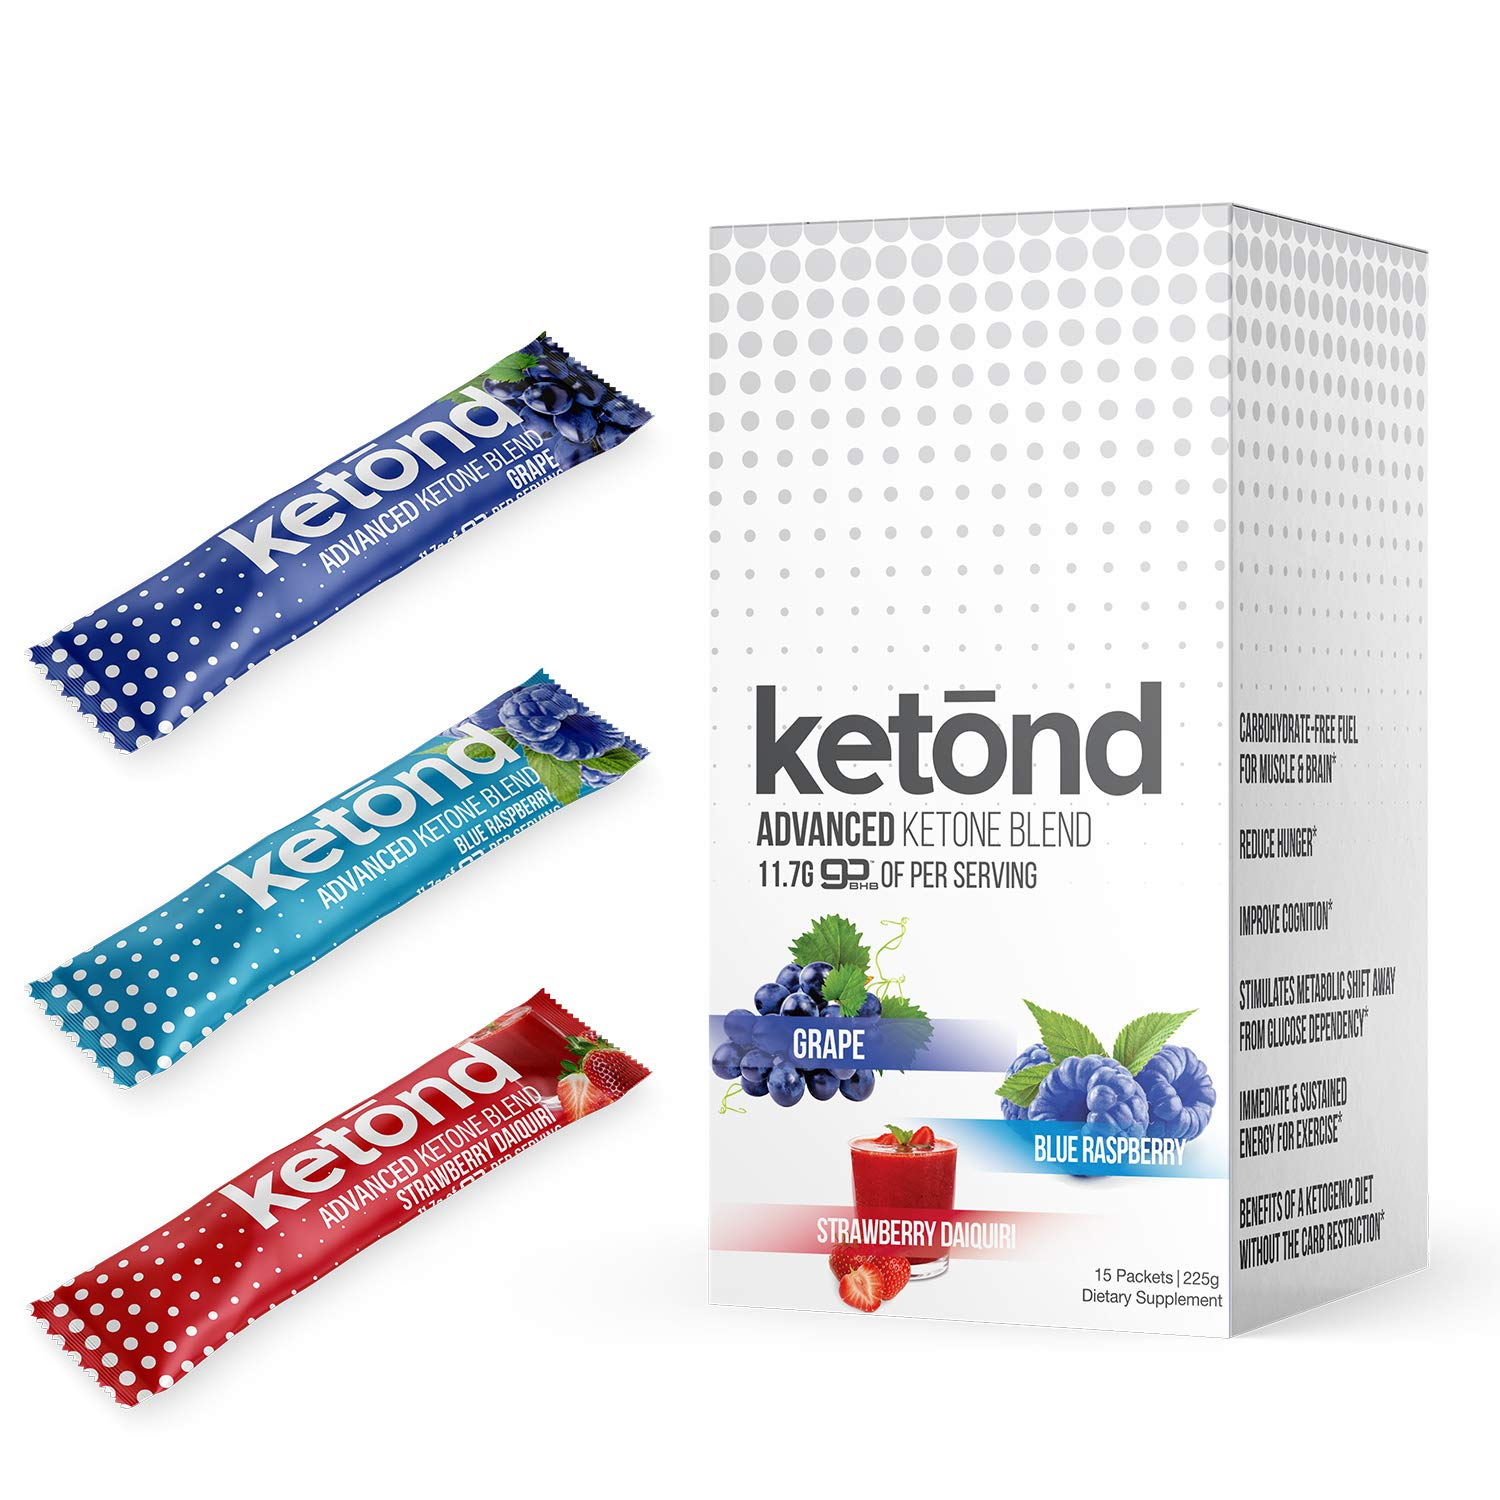 Ketond Advanced Ketone Supplement - 15 'On The Go' Packs - Exogenous Ketone Supplement 11.7g of BHB (Beta-Hydroxybutyrate) Salts to Lose Weight, Increase Energy (Grape, Blue Raspberry and Strawberry) by Ketond Nutrition